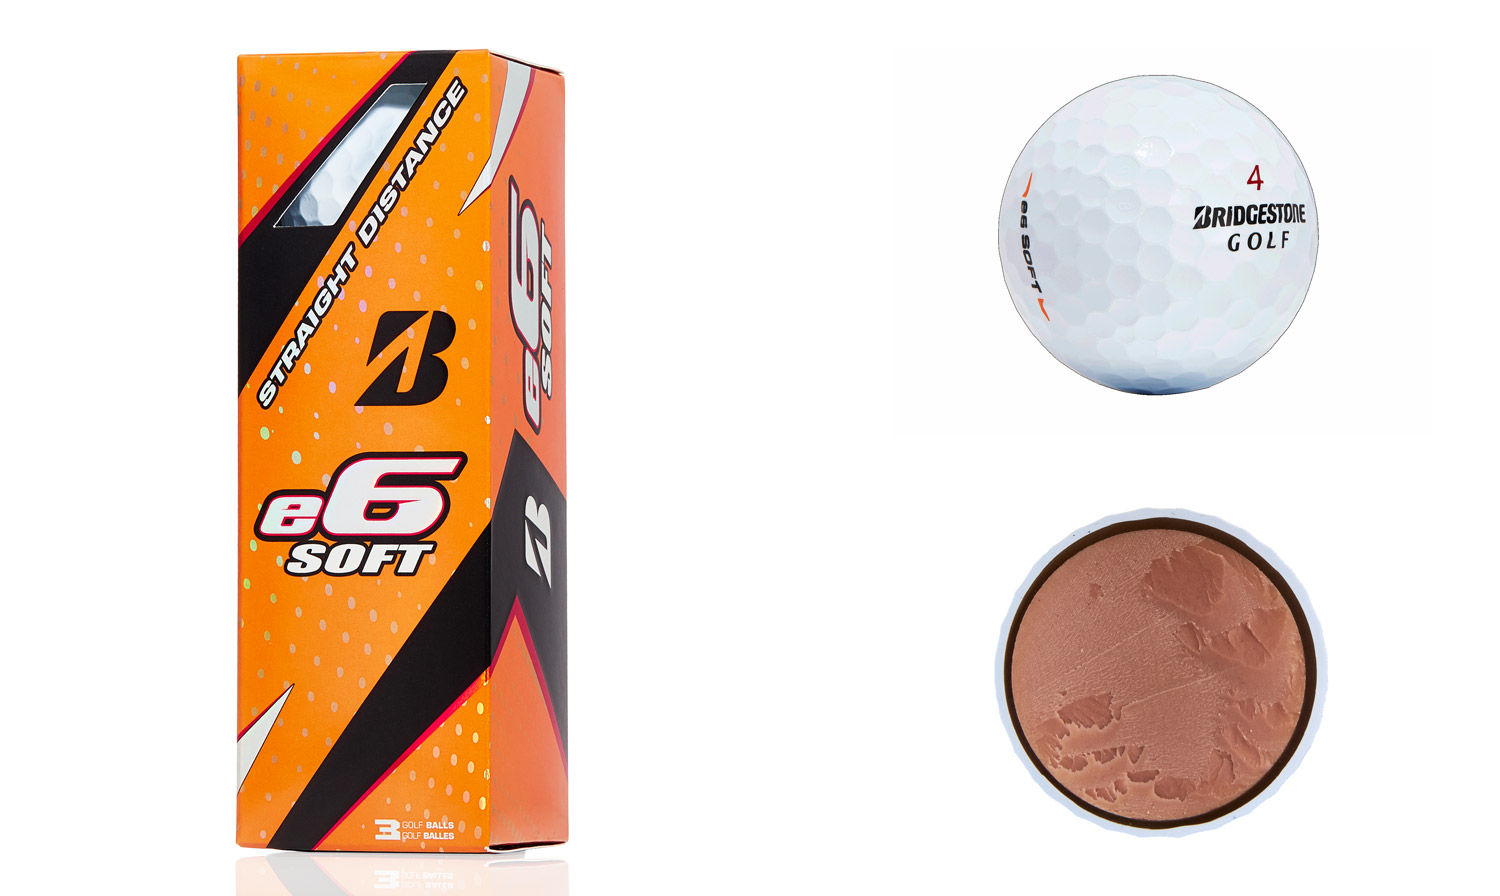 Bridgestone e6 Soft golf balls.